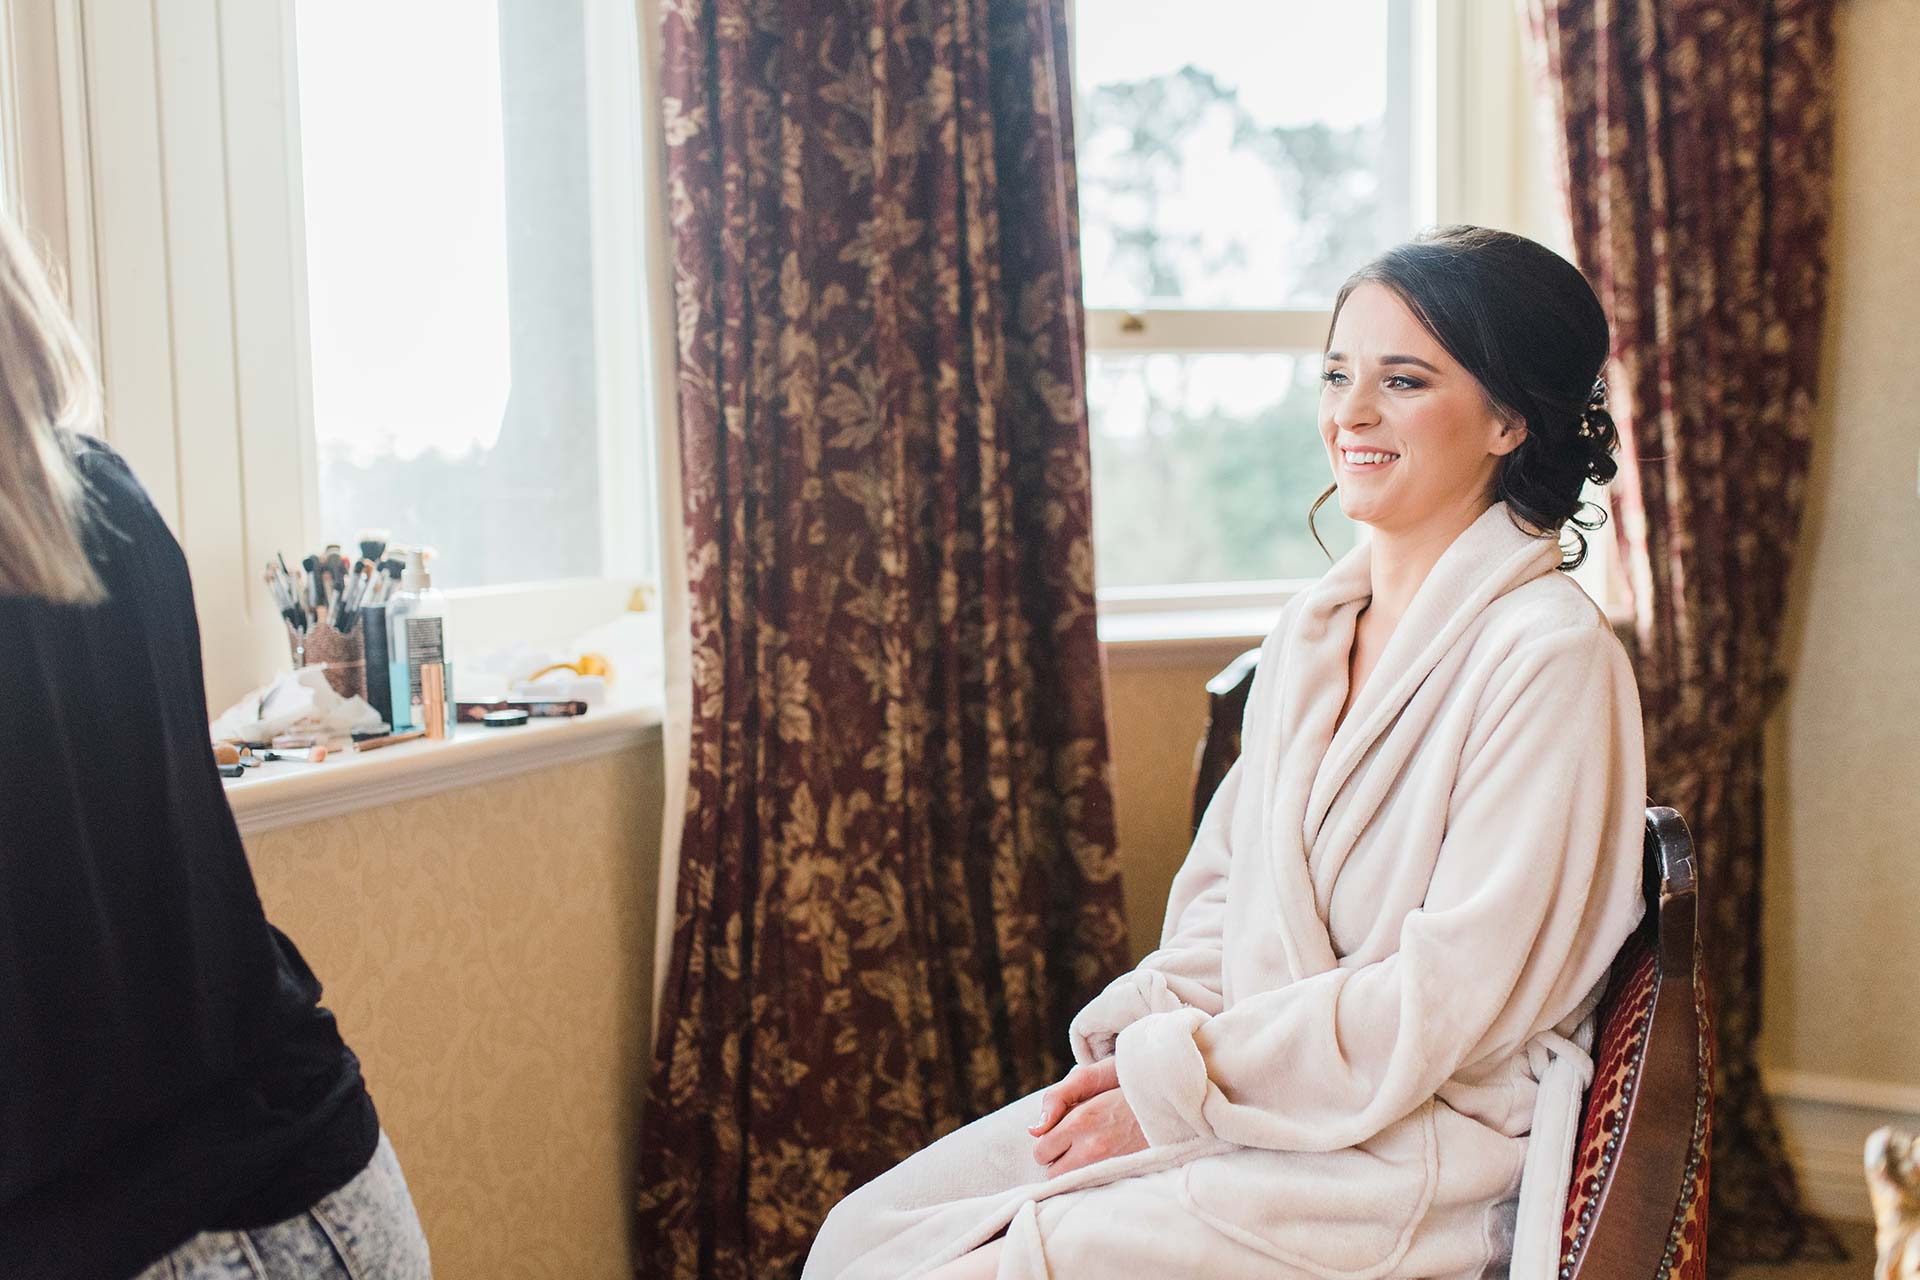 bride smiles as she is getting ready for her wedding in Ireland